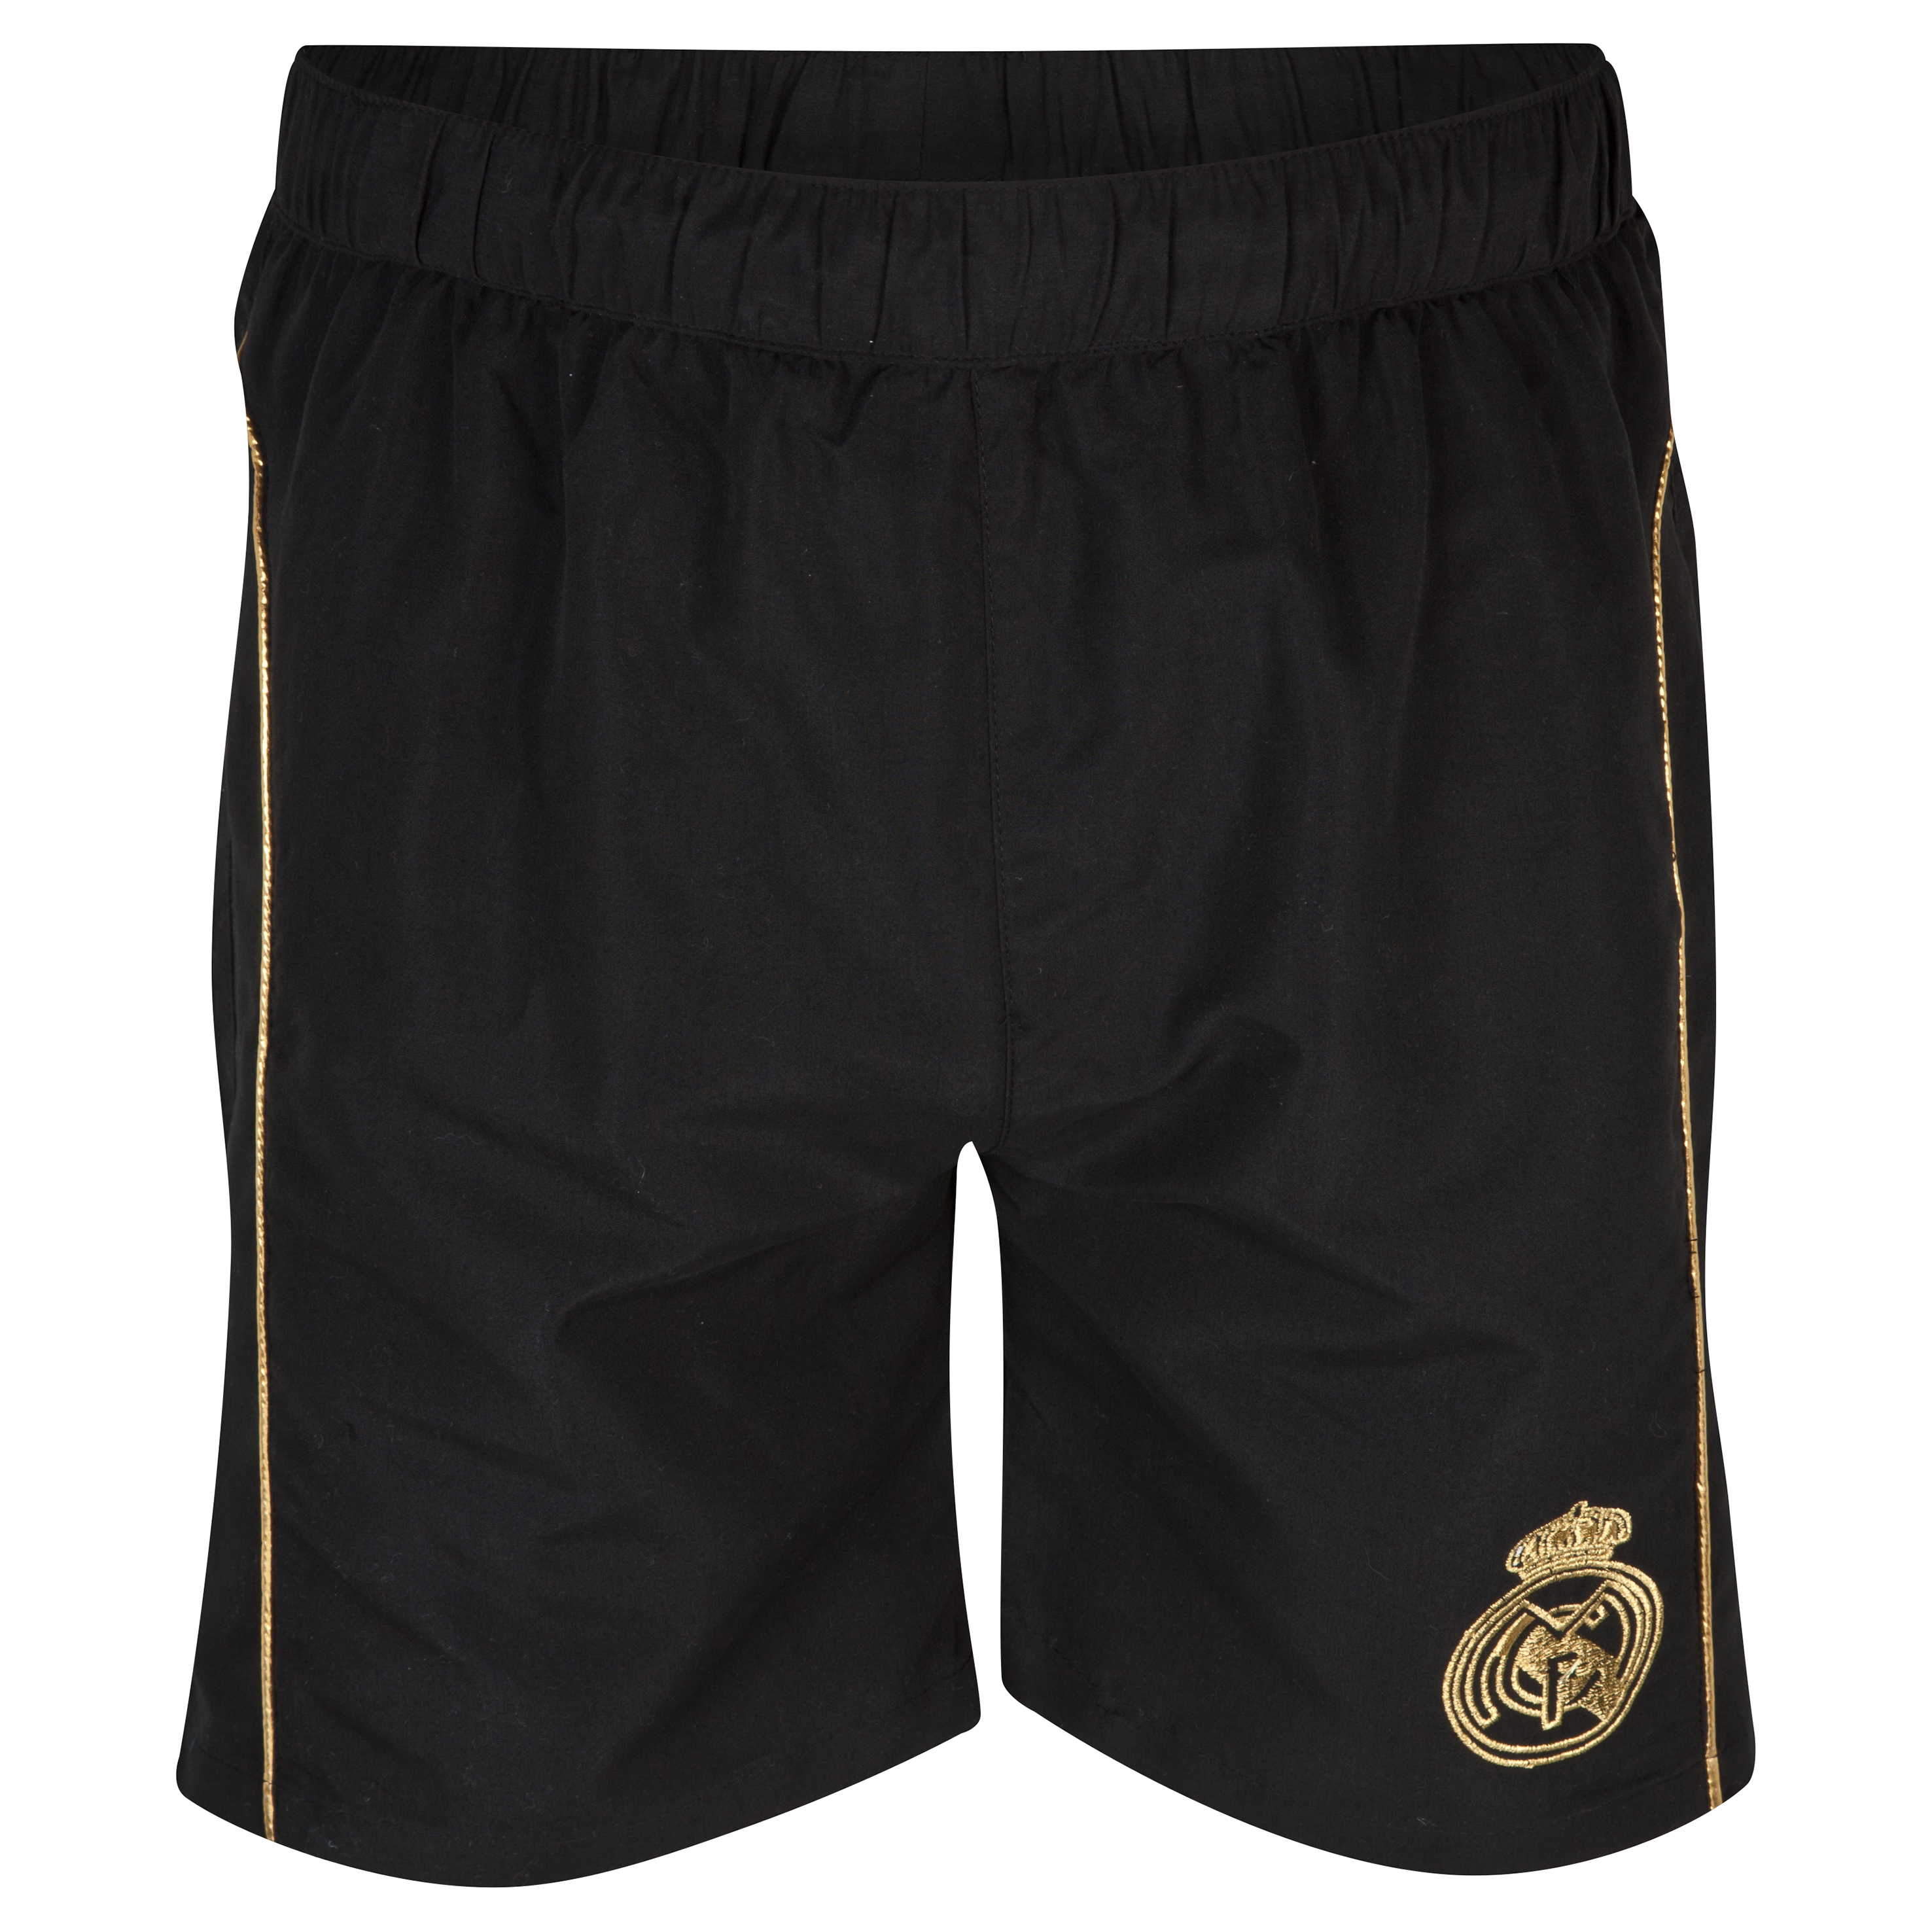 Real Madrid Crest Swim Shorts - Mens Black